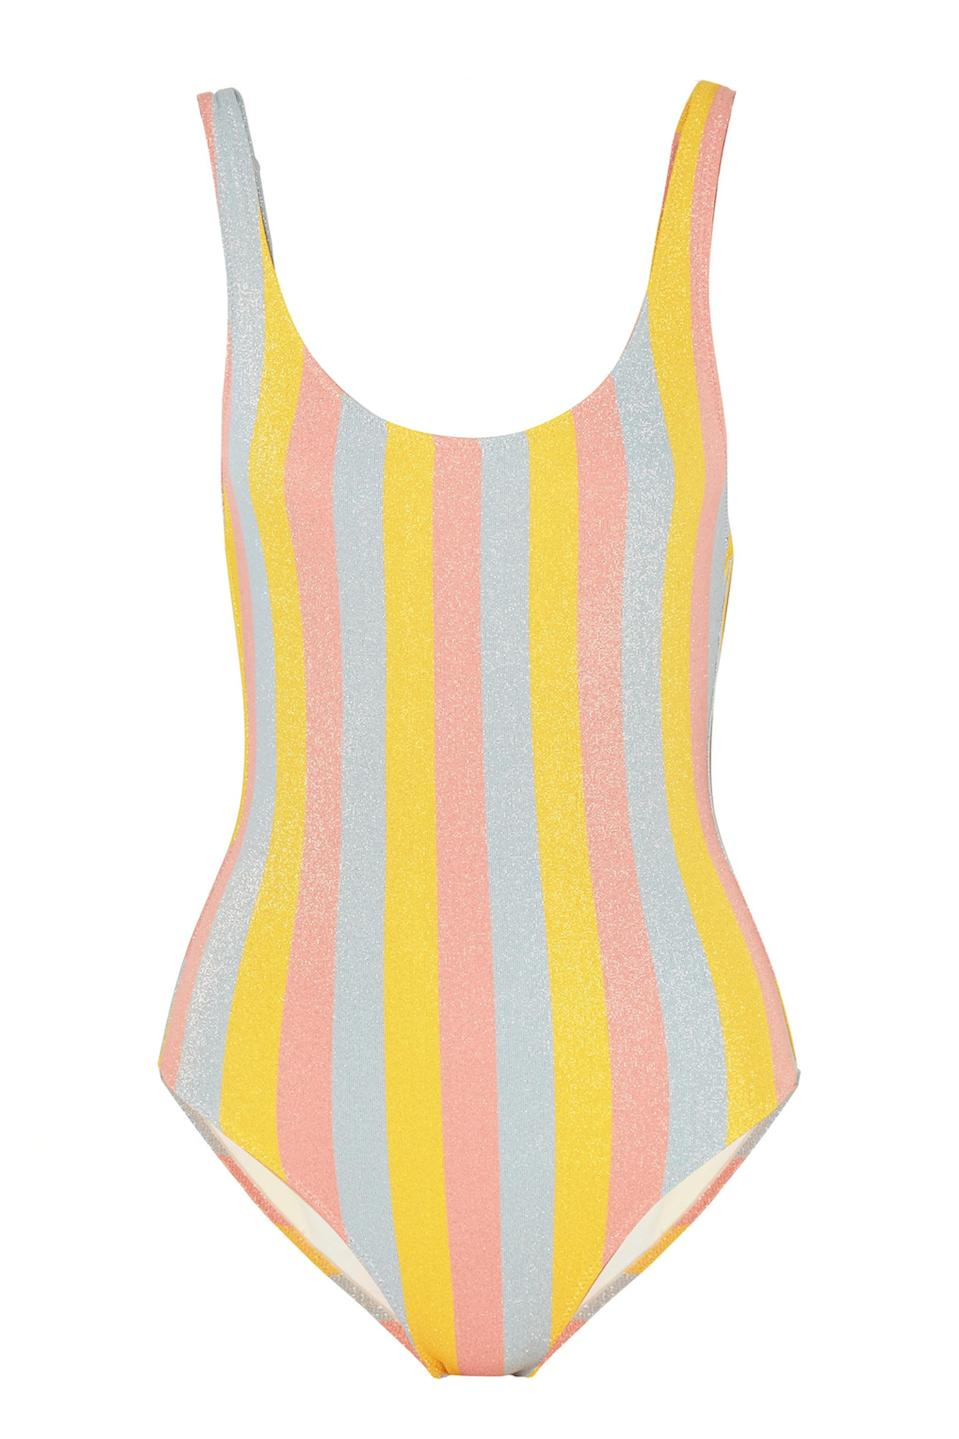 """<p>Planning a quick getaway this summer? We highly recommend packing this seriously Insta-worthy swimsuit for a whole load of likes and praise hand emojis. <em><a href=""""https://www.net-a-porter.com/gb/en/product/1035856/solid___striped/the-anne-marie-glittered-striped-swimsuit"""" rel=""""nofollow noopener"""" target=""""_blank"""" data-ylk=""""slk:Shop now"""" class=""""link rapid-noclick-resp"""">Shop now</a>.</em> </p>"""